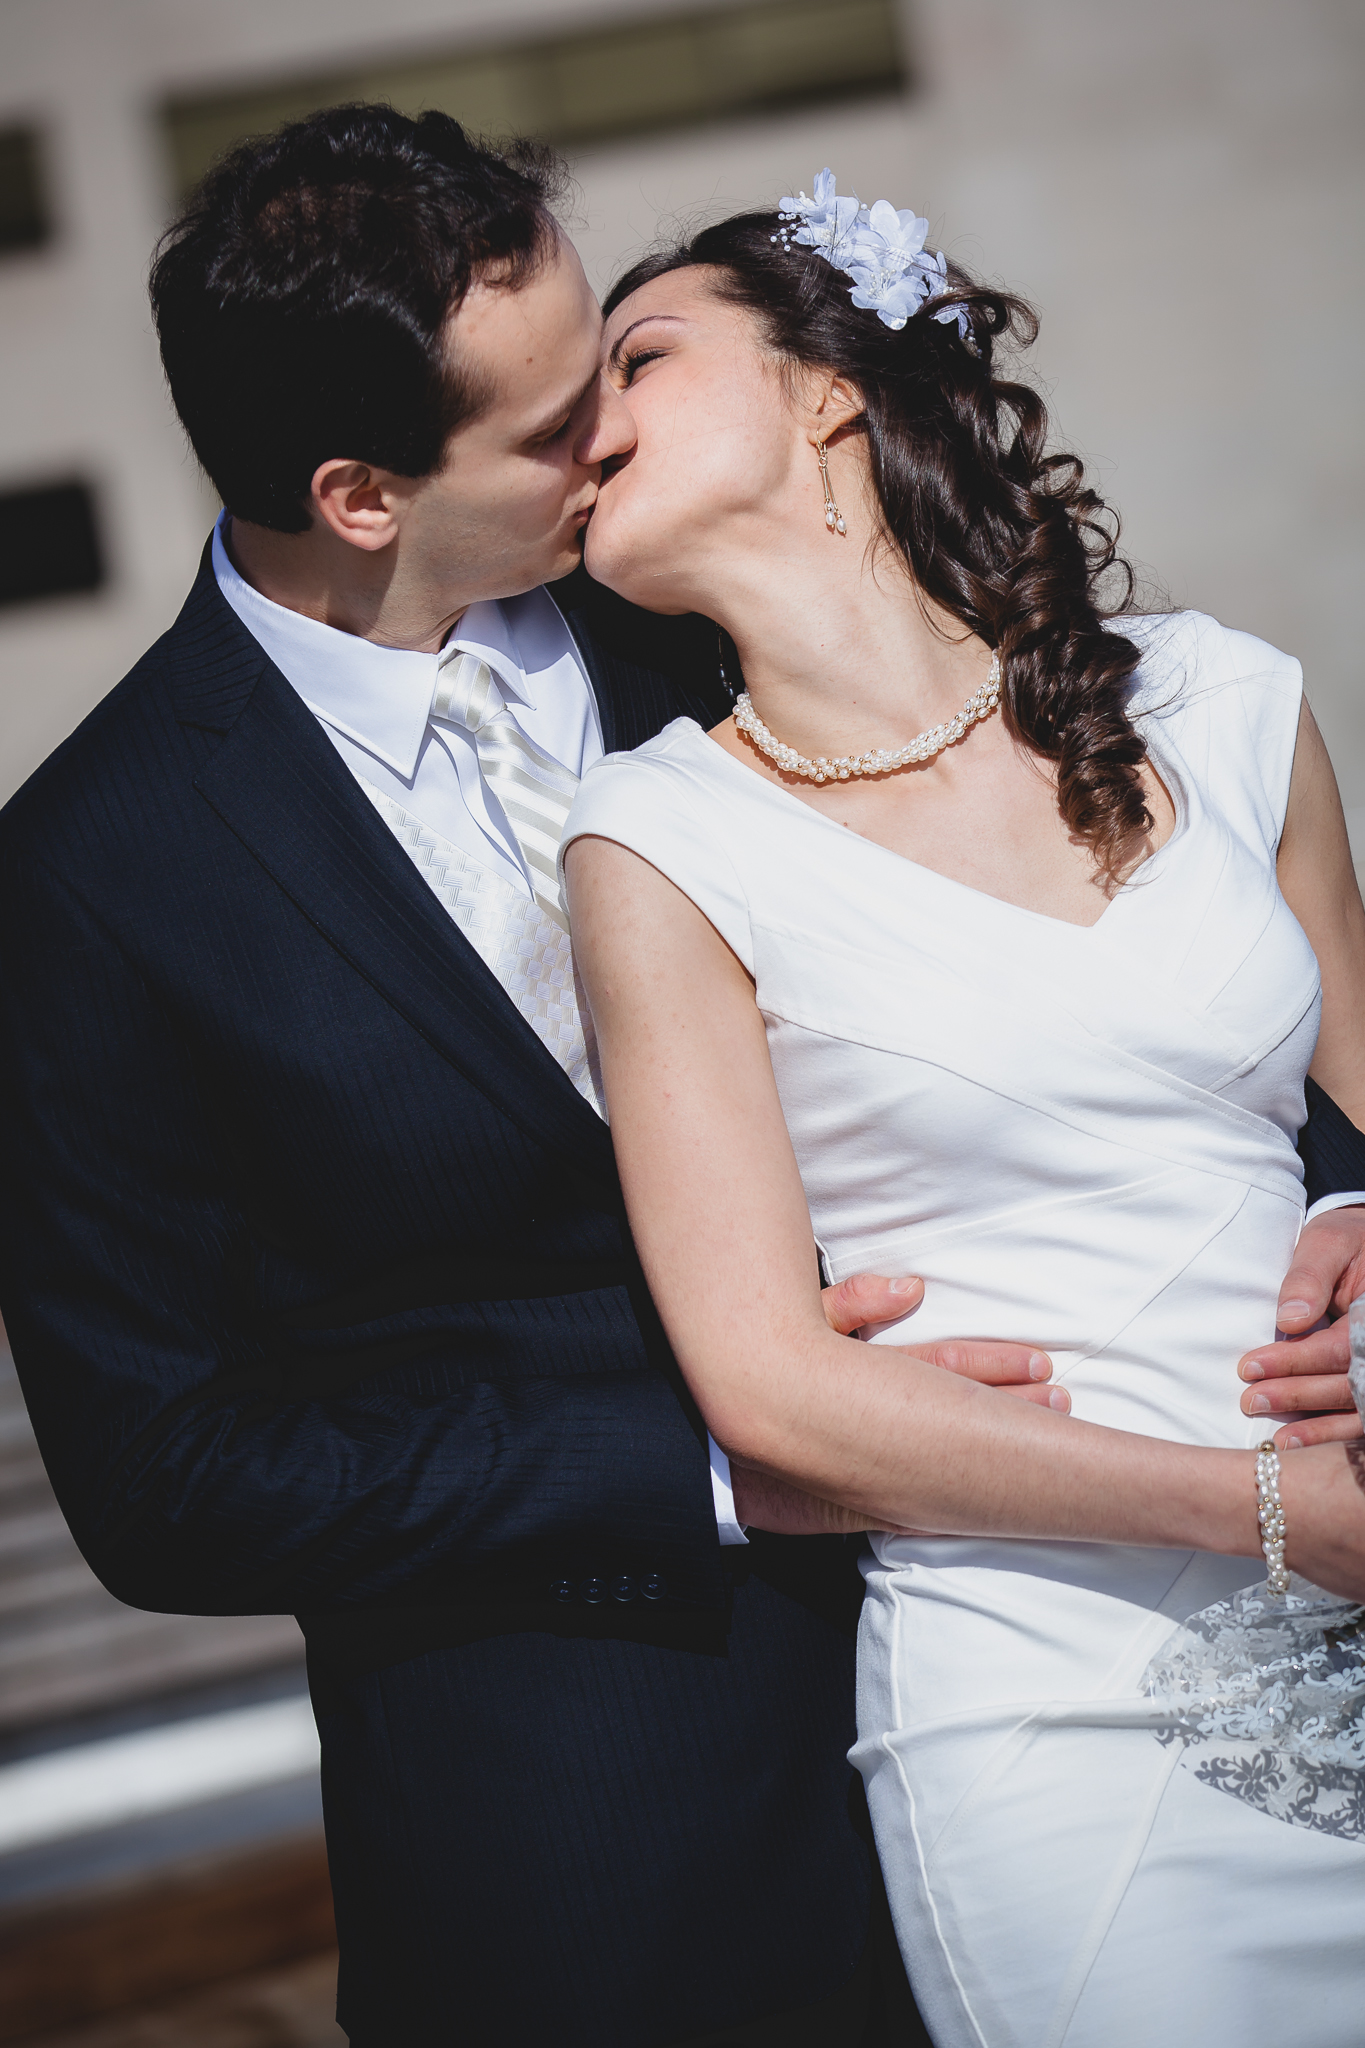 Toronto Wedding Photography - Zoya & Alexei -1.jpg